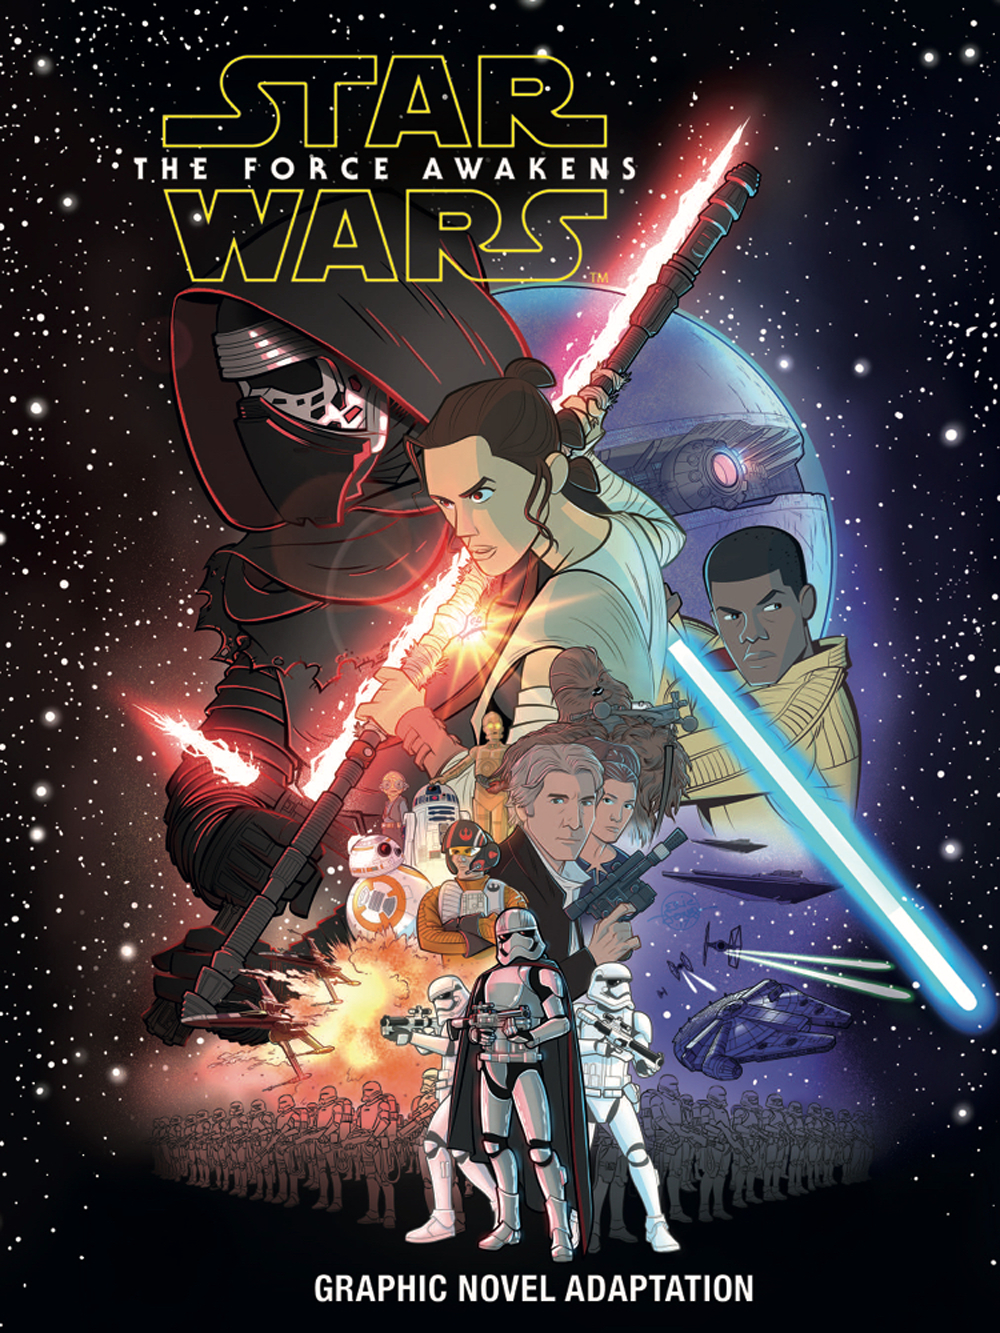 STAR WARS THE FORCE AWAKENS GN